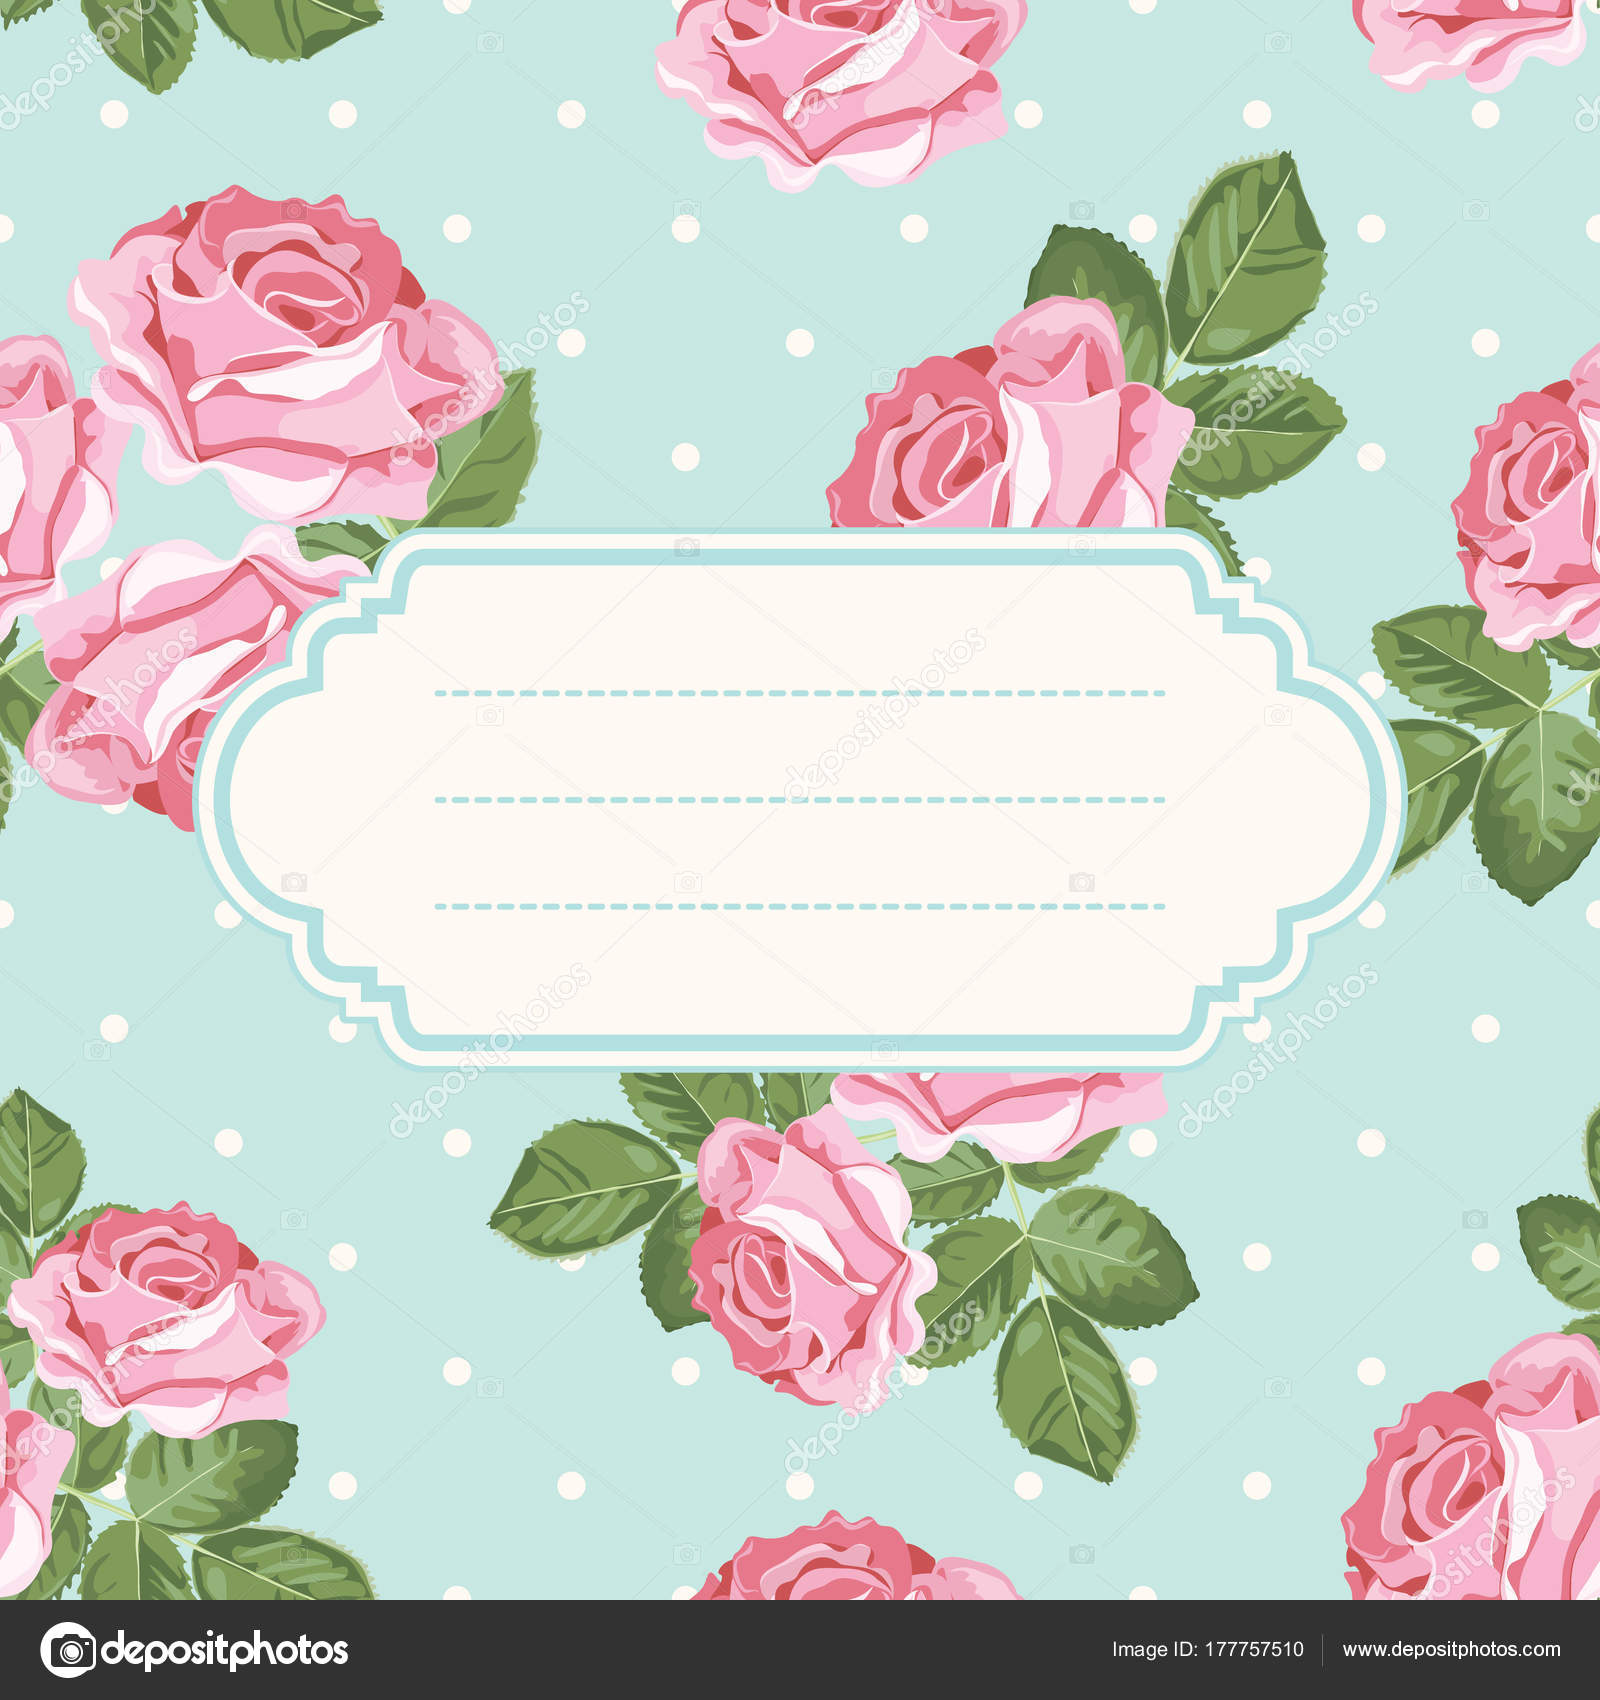 Shabby Chic Rose And Polka Dot Light Green Background With Blank Empty Frame Floral Card Template Vector Illustartion By Marymoart